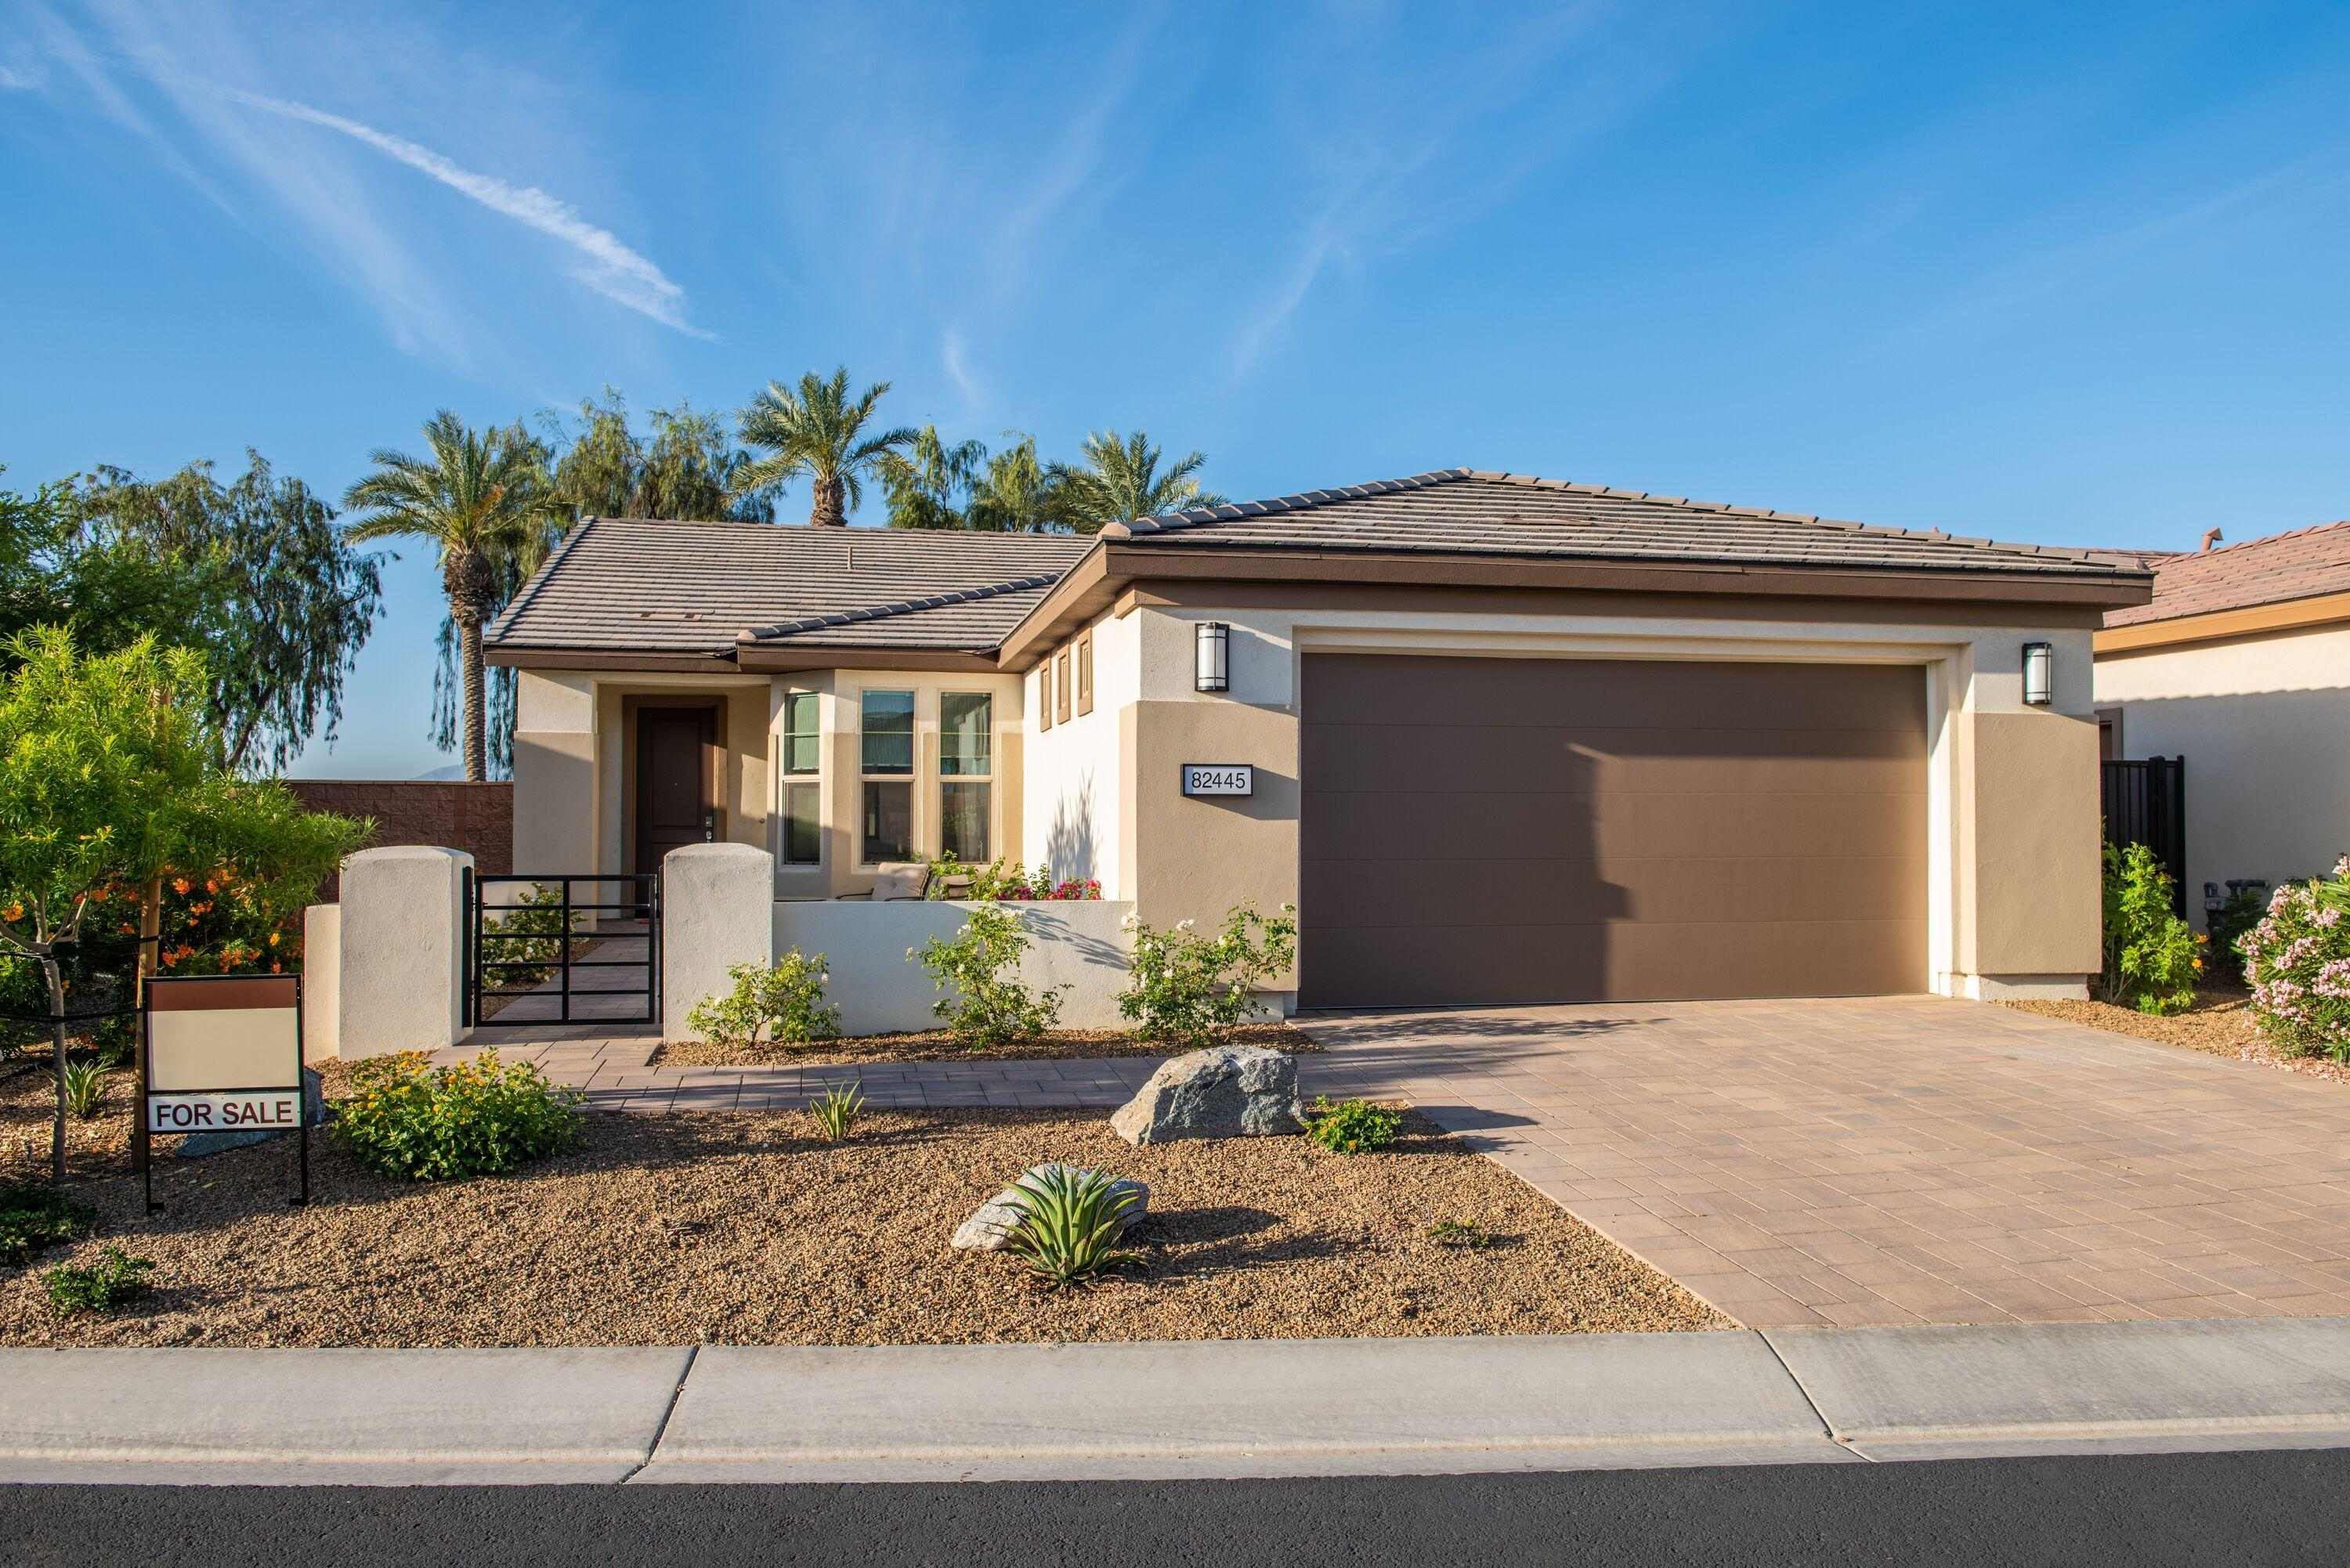 Photo of 82445 Murray Canyon Drive, Indio, CA 92201